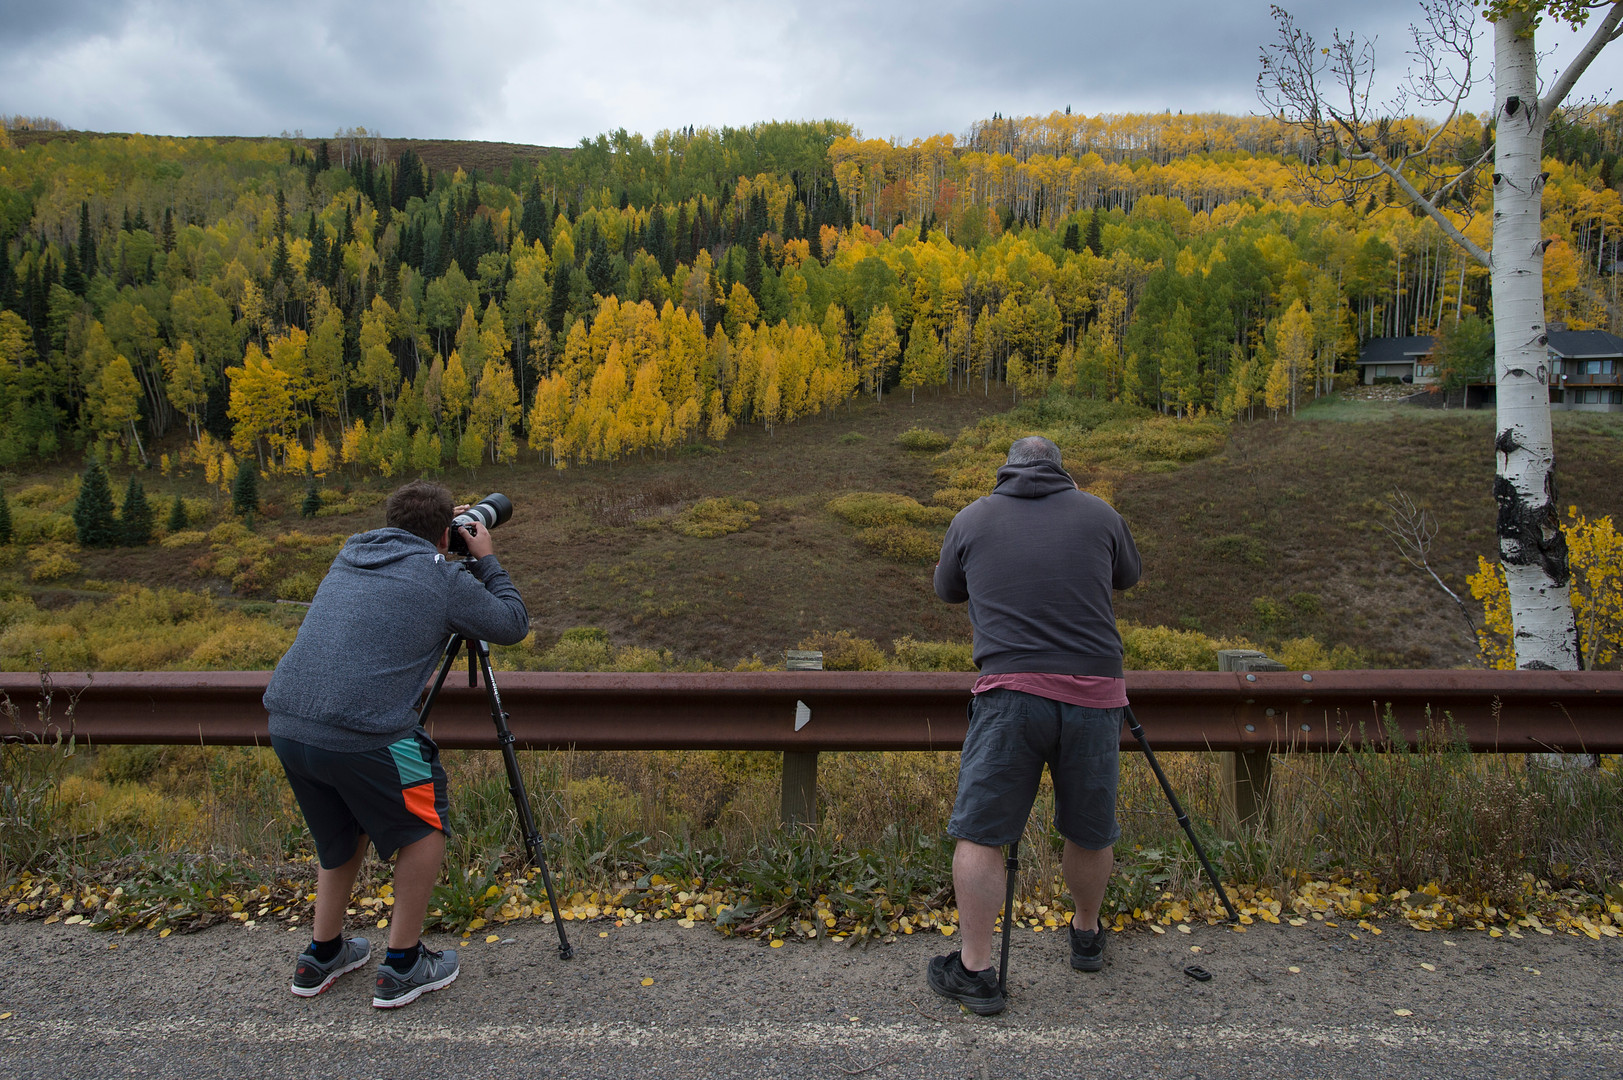 Nick Selway, from Hawaii, and Steve Cullen, visiting from Washington, snap photos from the side of the road in Washington Gulch near Crested Butte, Colorado on Friday, September 22, 2017.